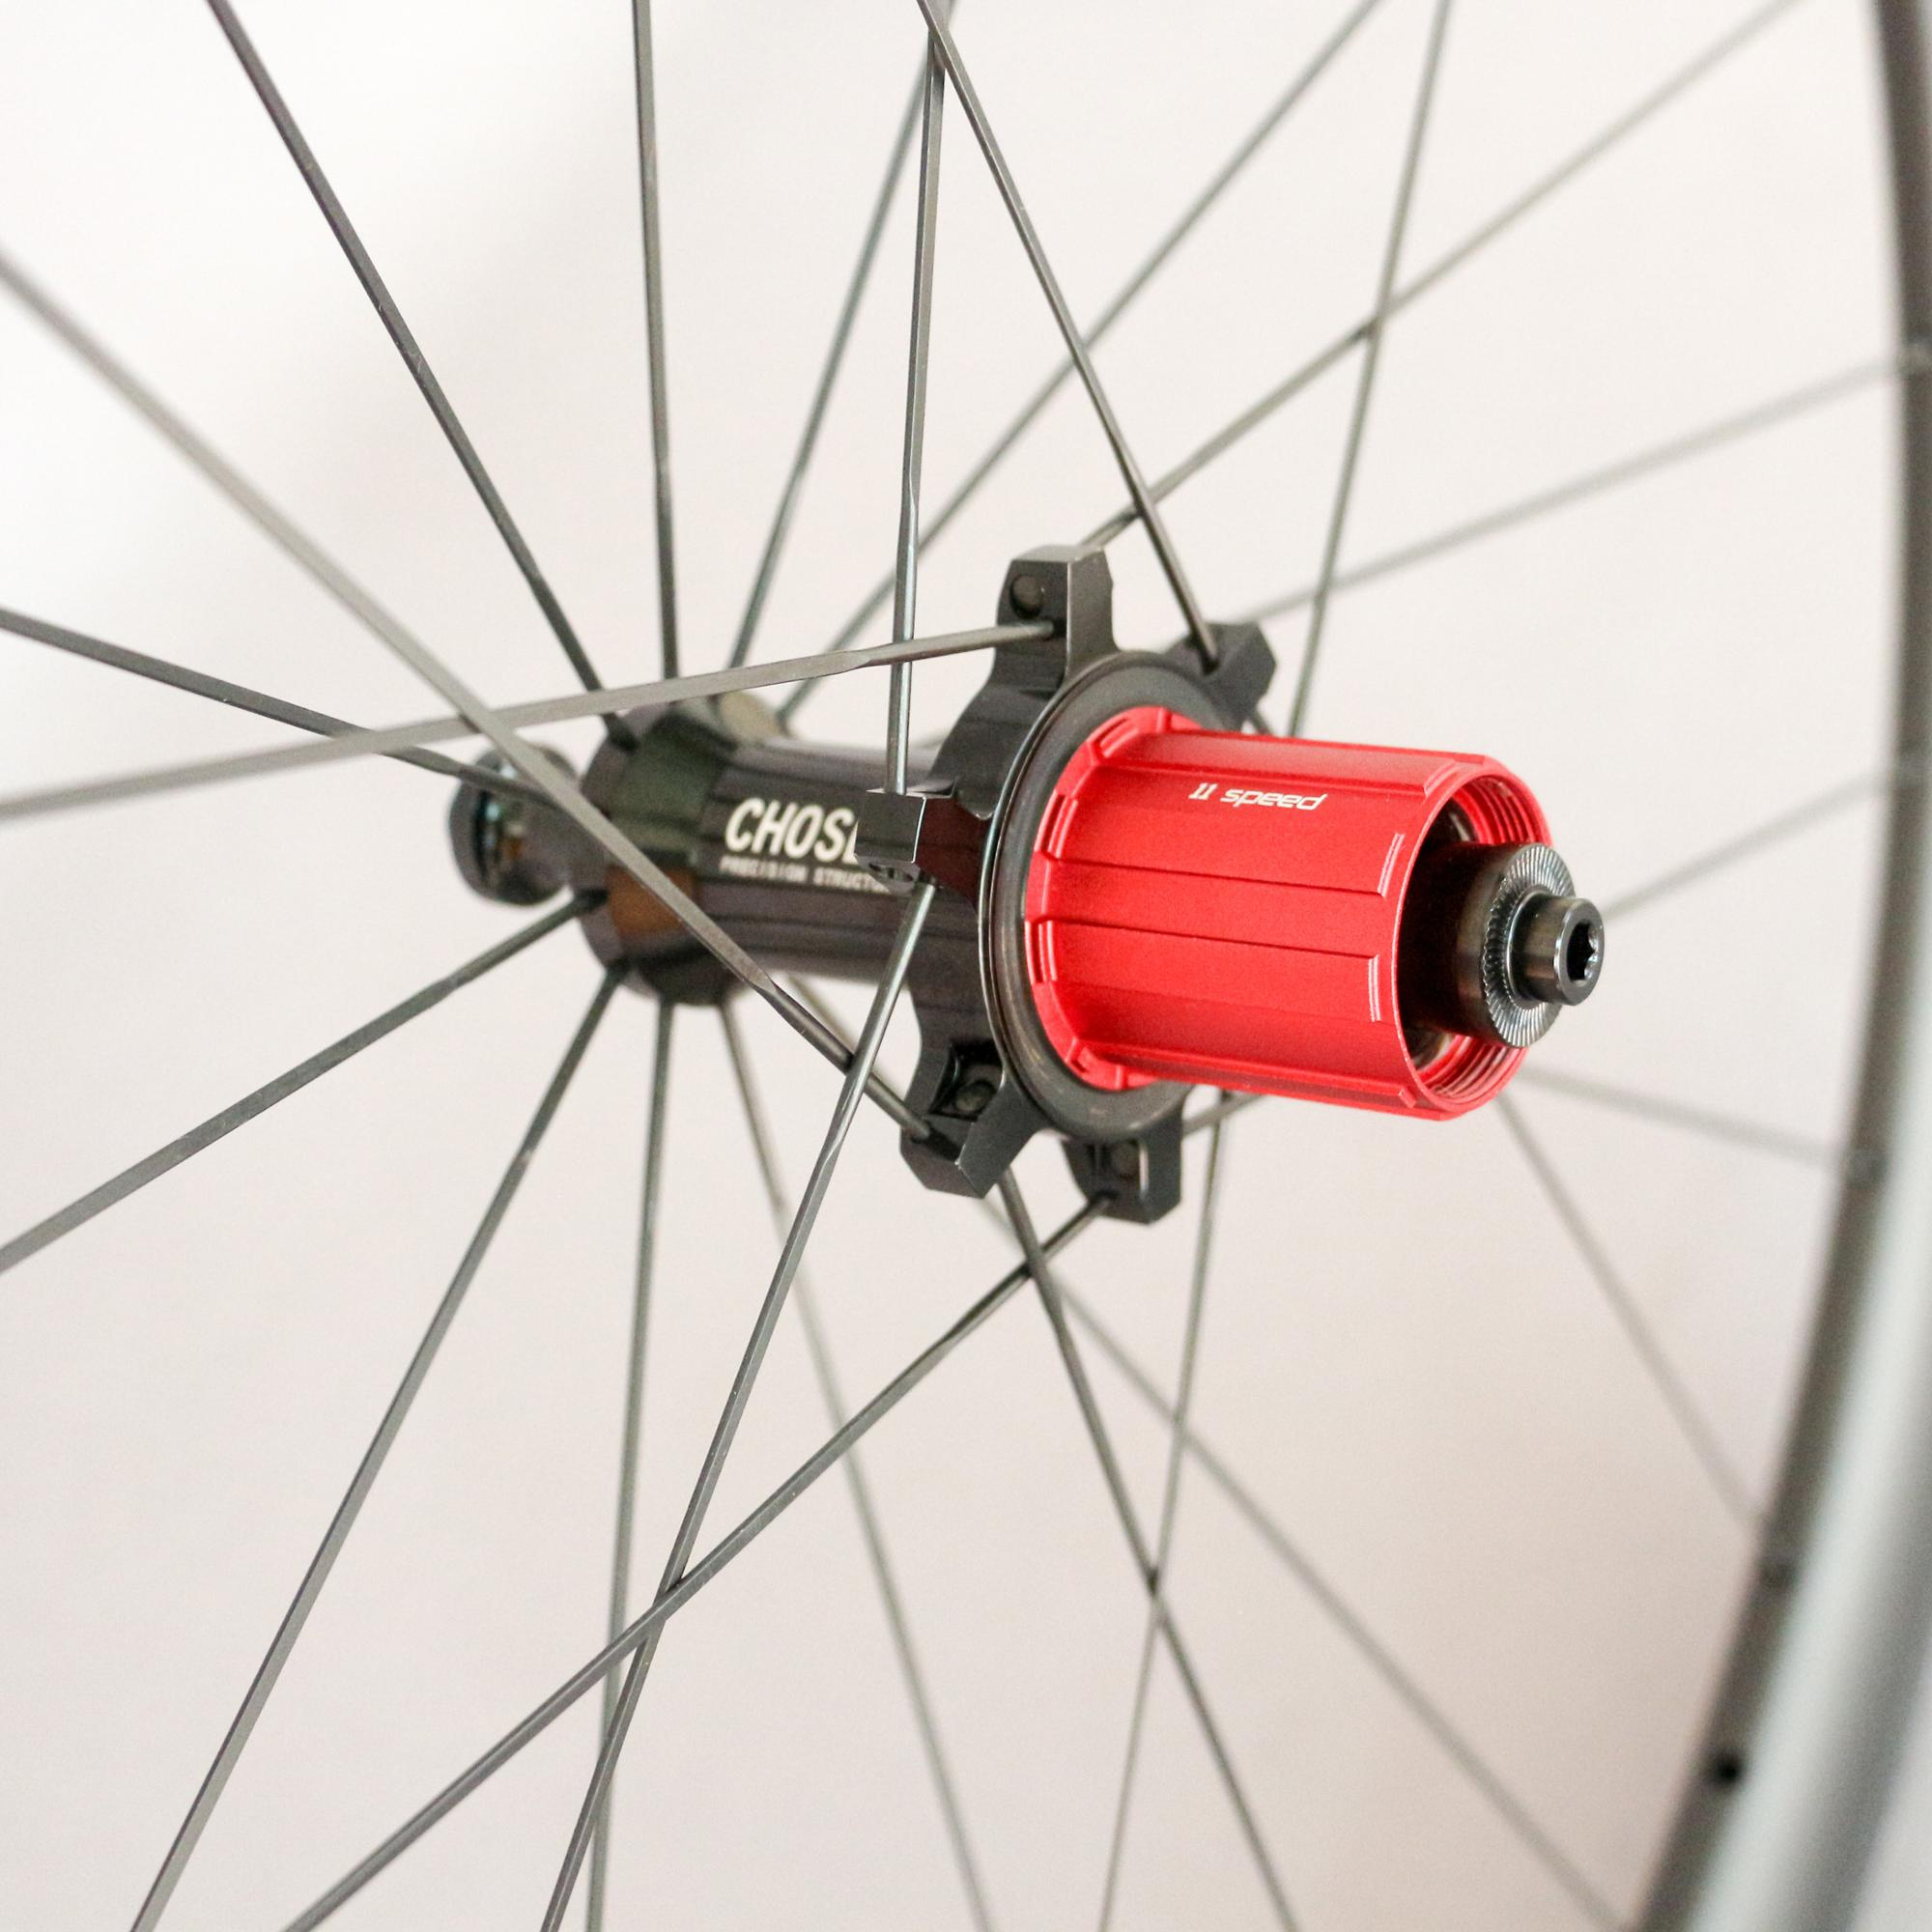 China Carbon Clincher/Tubular 50mm Wheelset For Road Bike With Chosen Hub And Novatc Hub